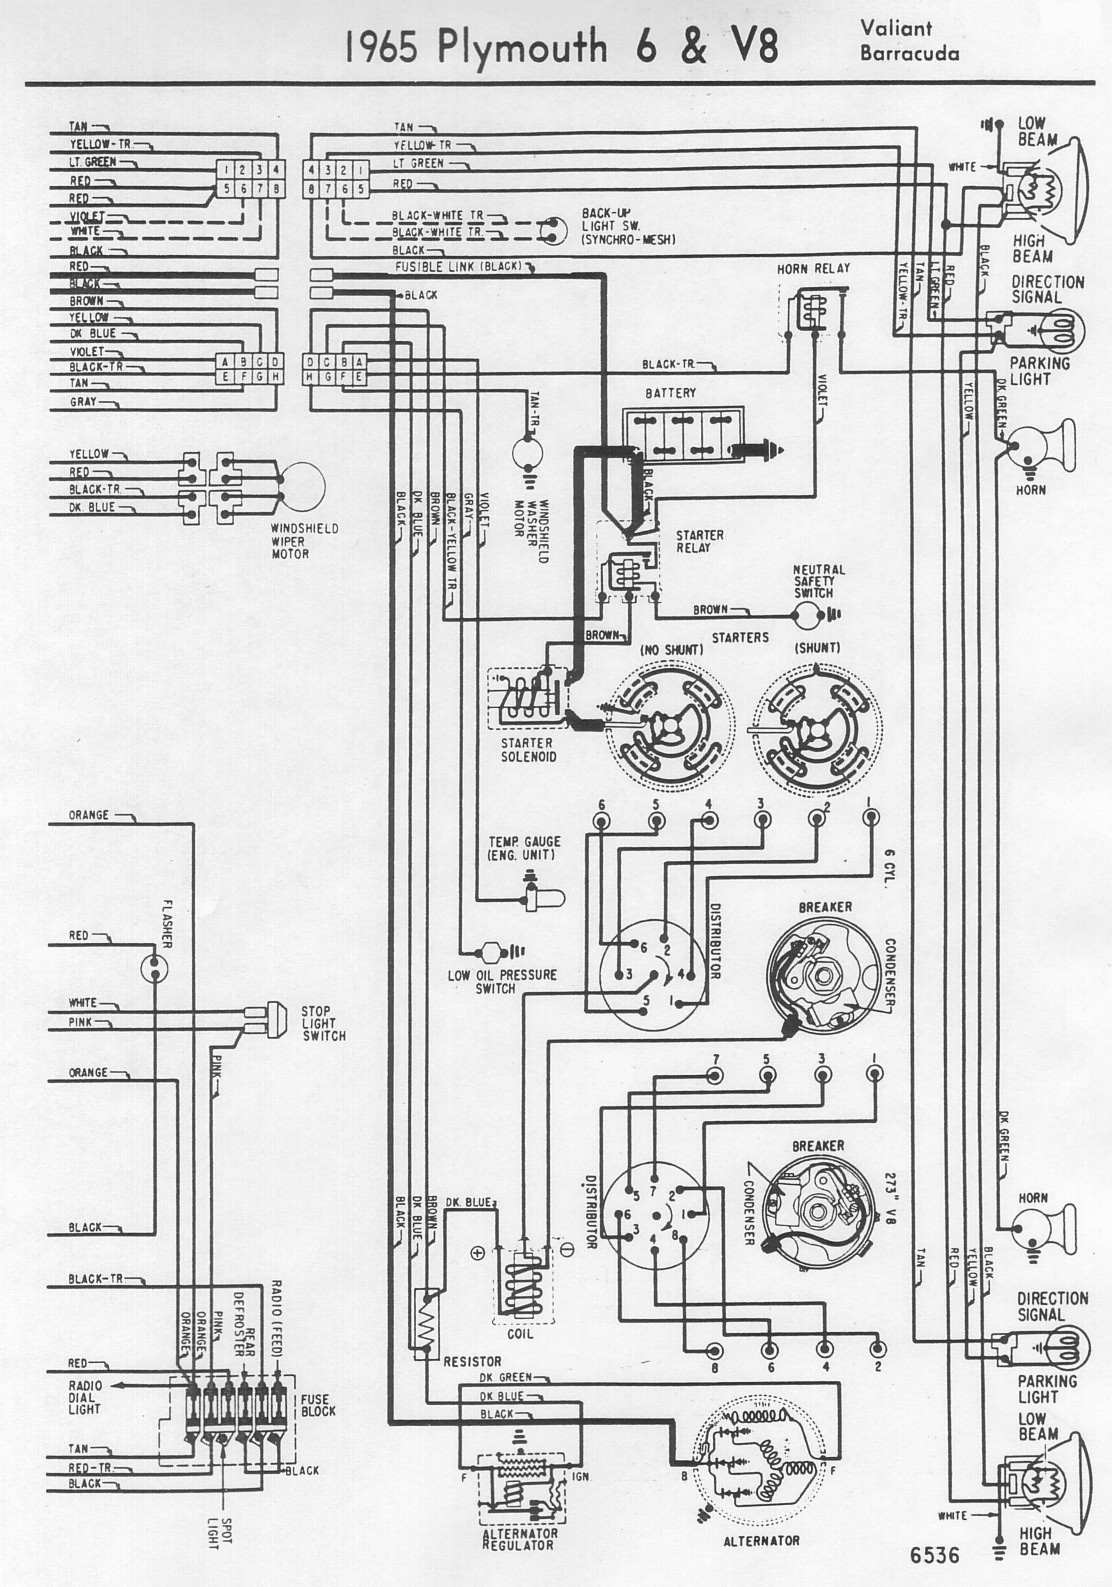 toyota truck wiring diagrams toyota discover your wiring diagram 1965 plymouth valiant or barracuda 2003 envoy center console wiring diagram